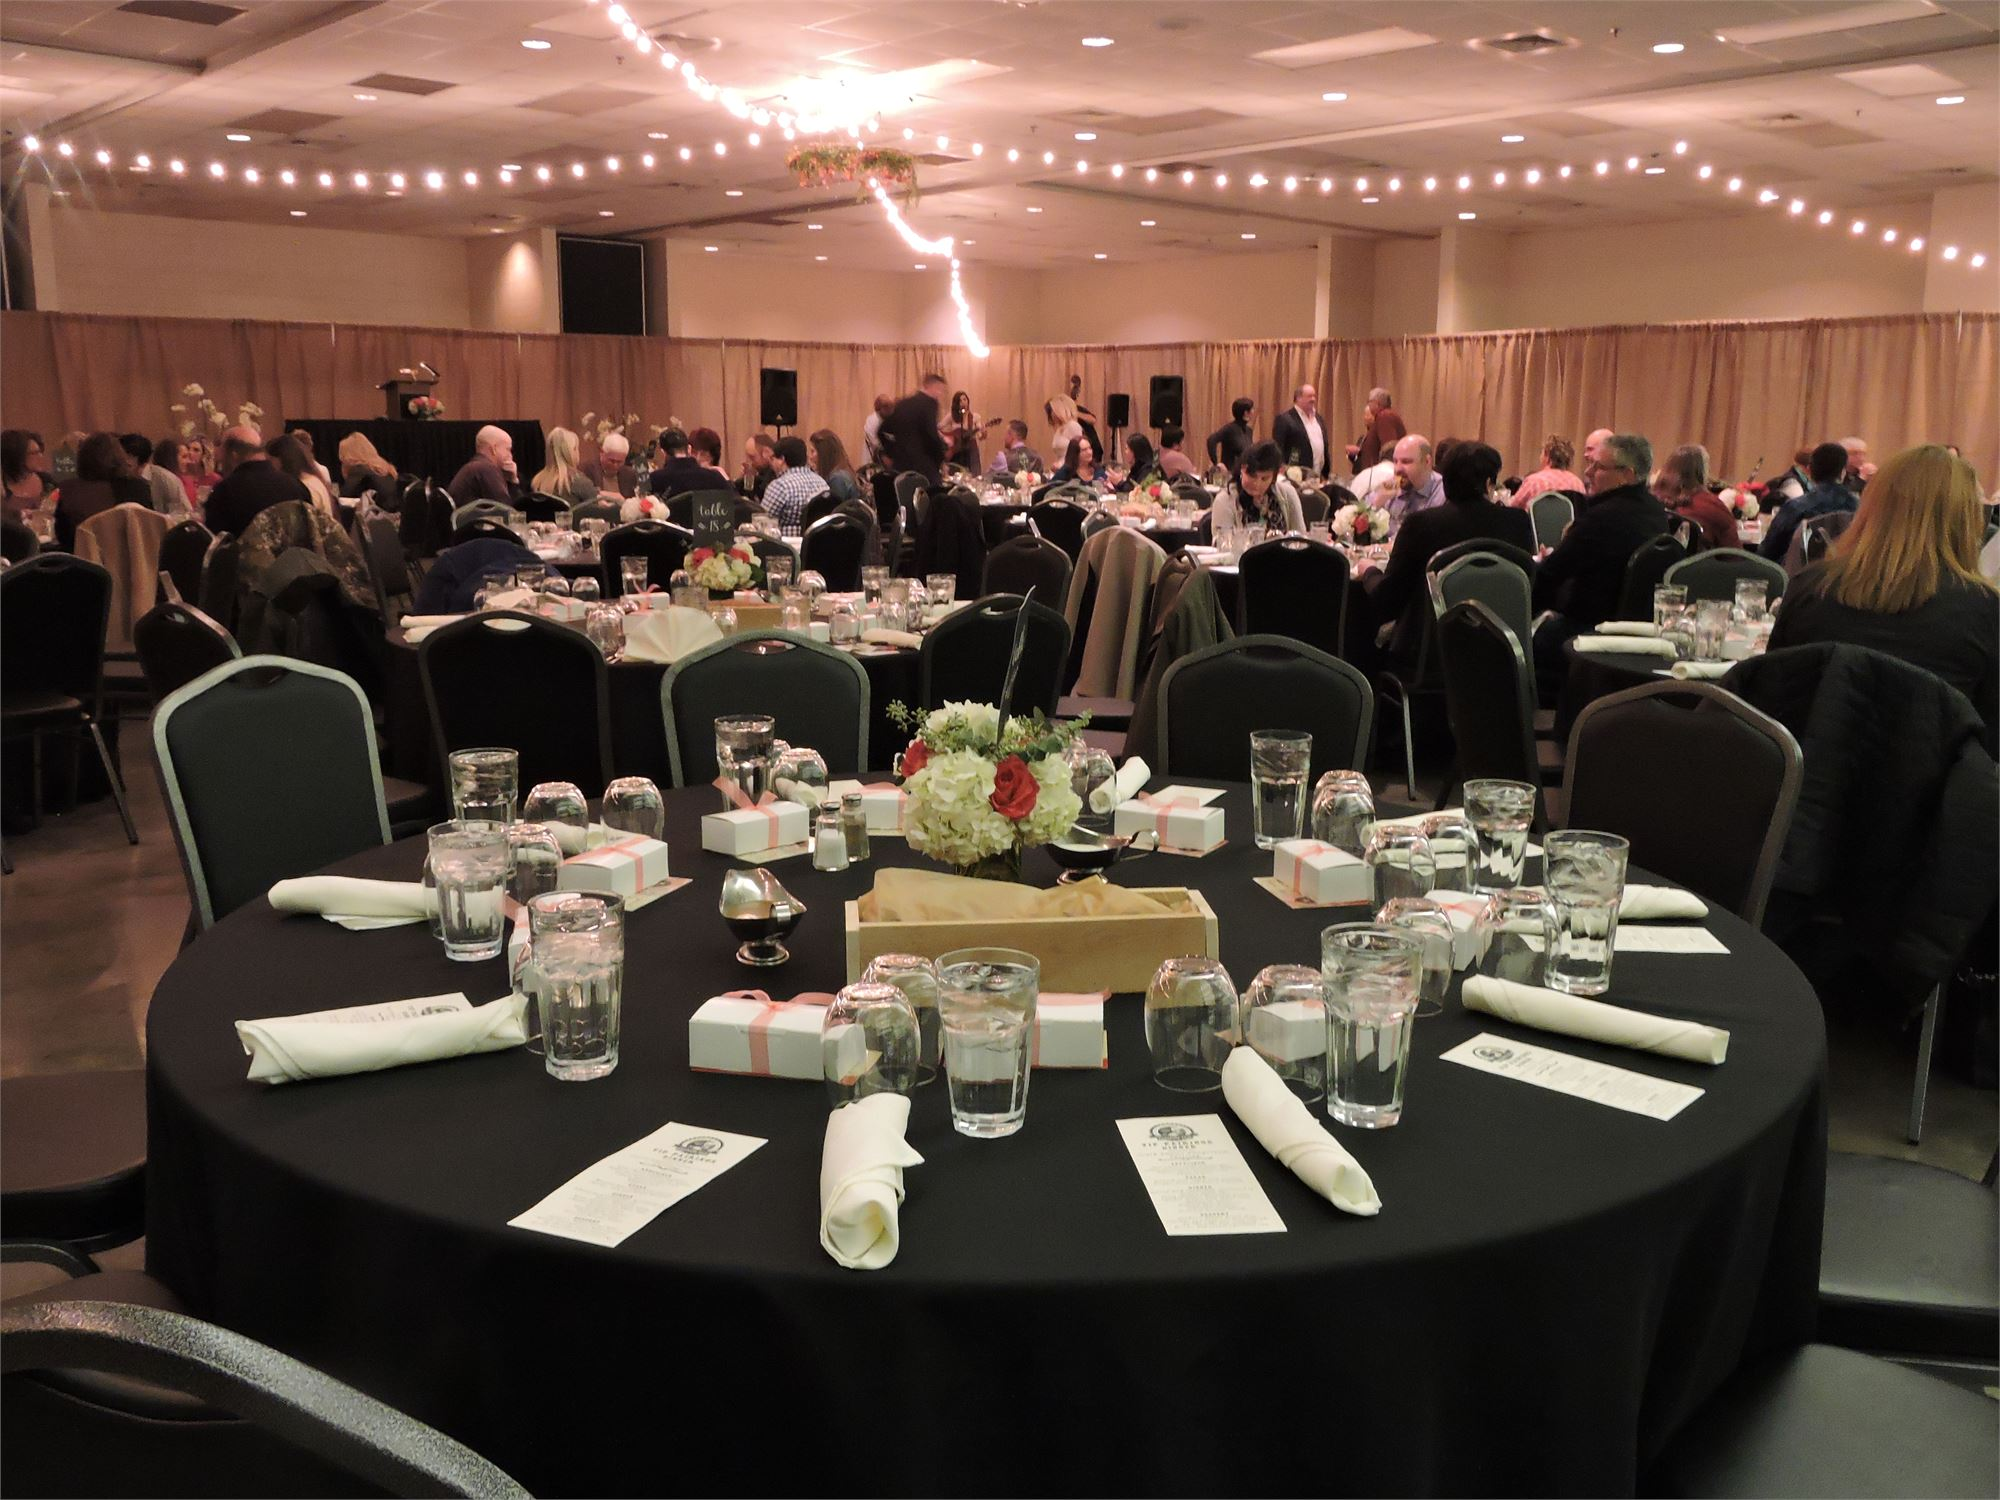 Inside of Center Hall with round tables with black linens set up and pink organza fabric draped over the ceiling with string lights